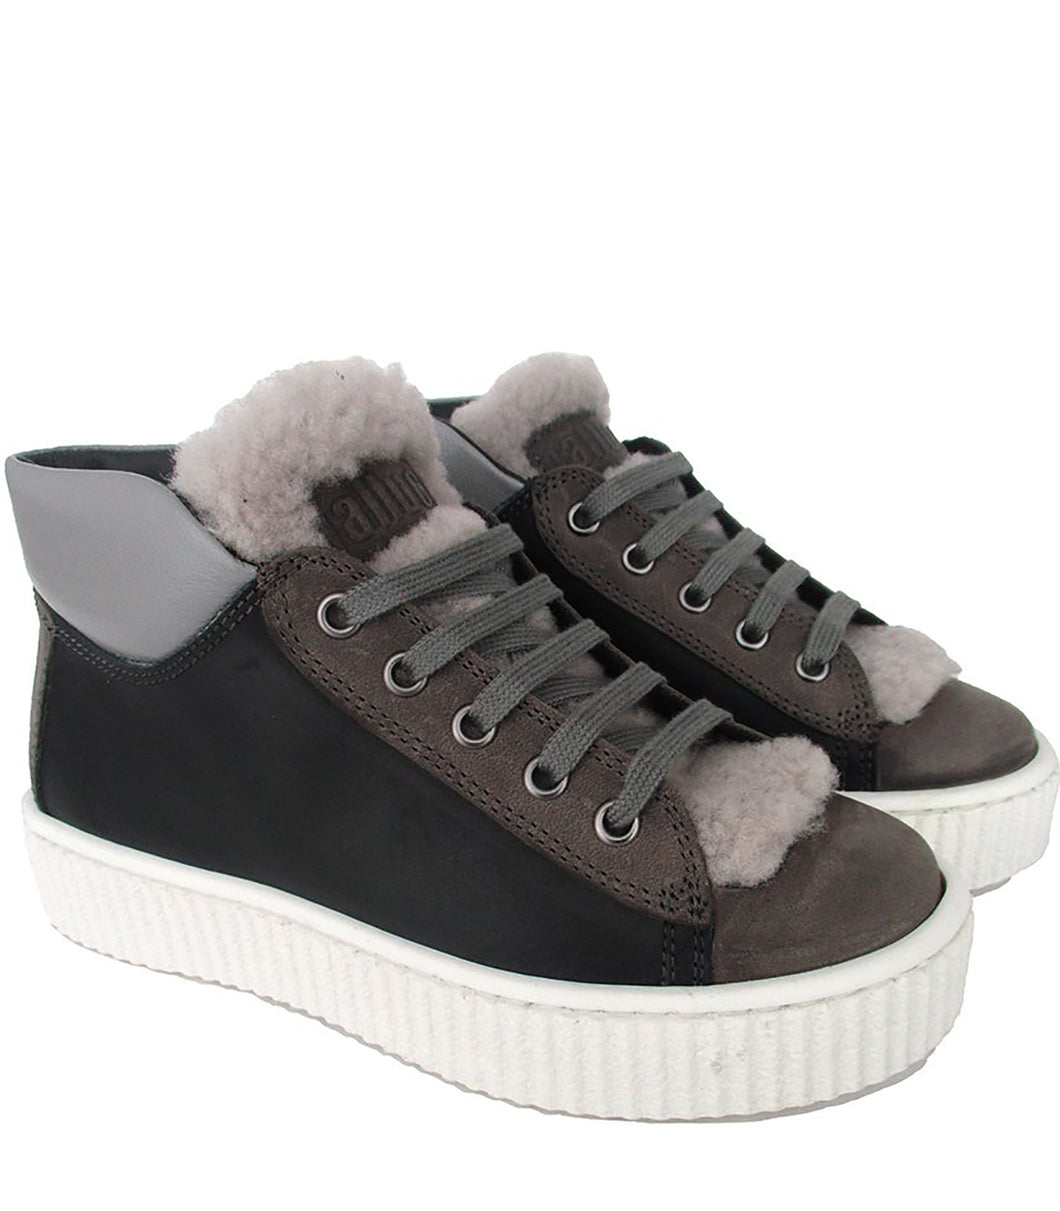 High-Top Sneakers in Black and Grey Calf Leather with Fur